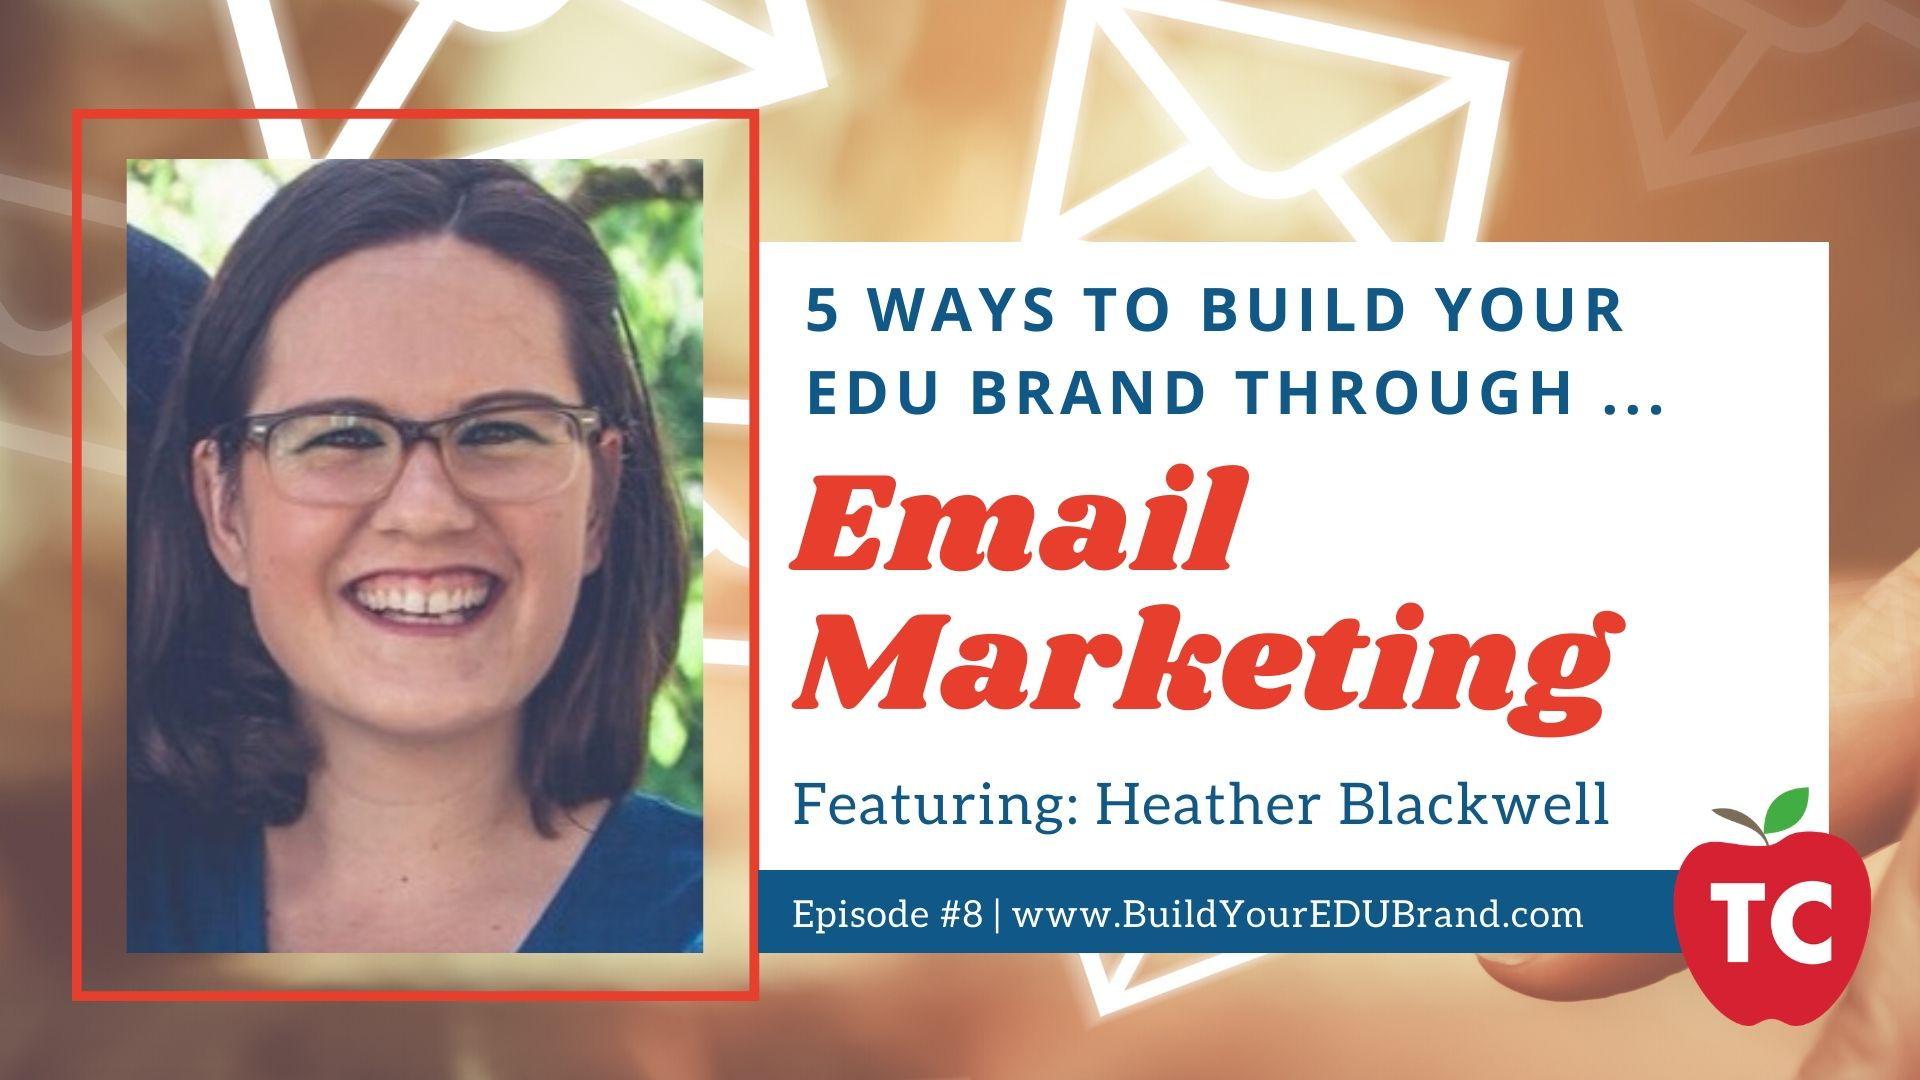 5 Ways To Build Your EDU Brand